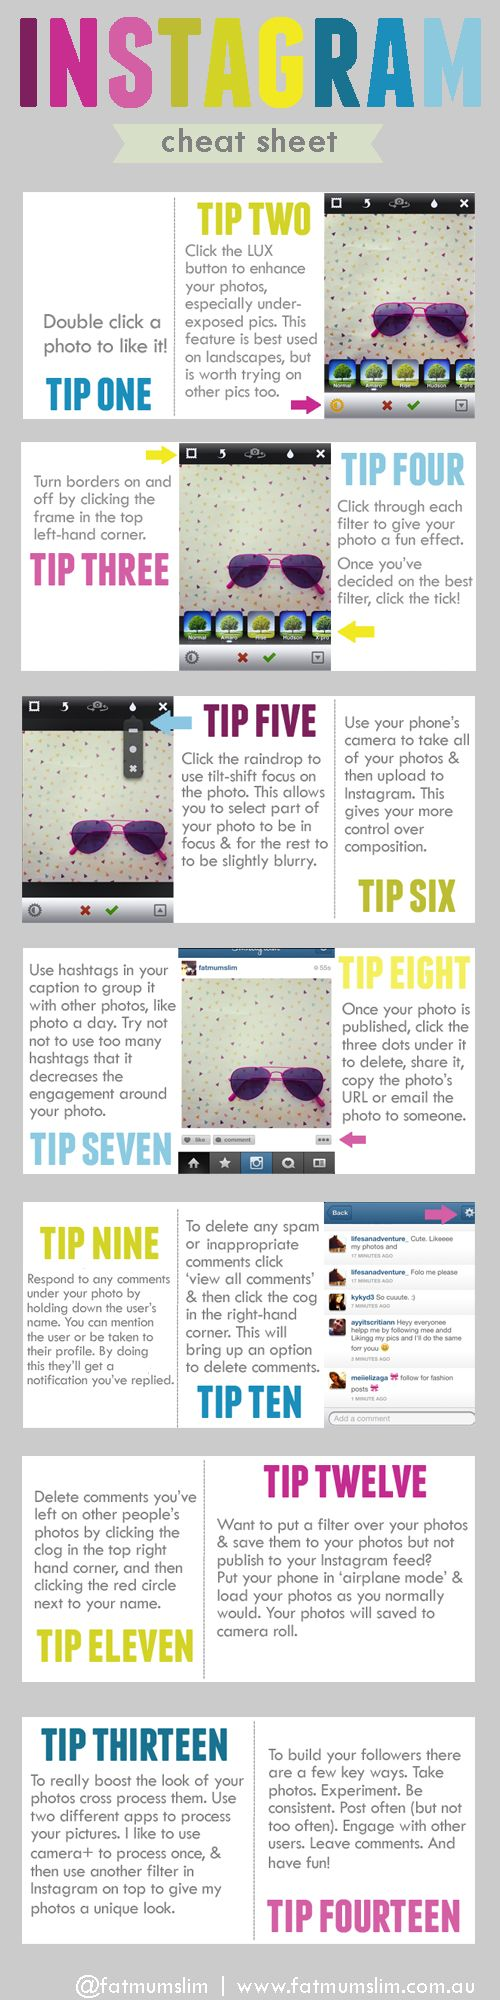 Instagram Ideas - Instagram cheat sheet